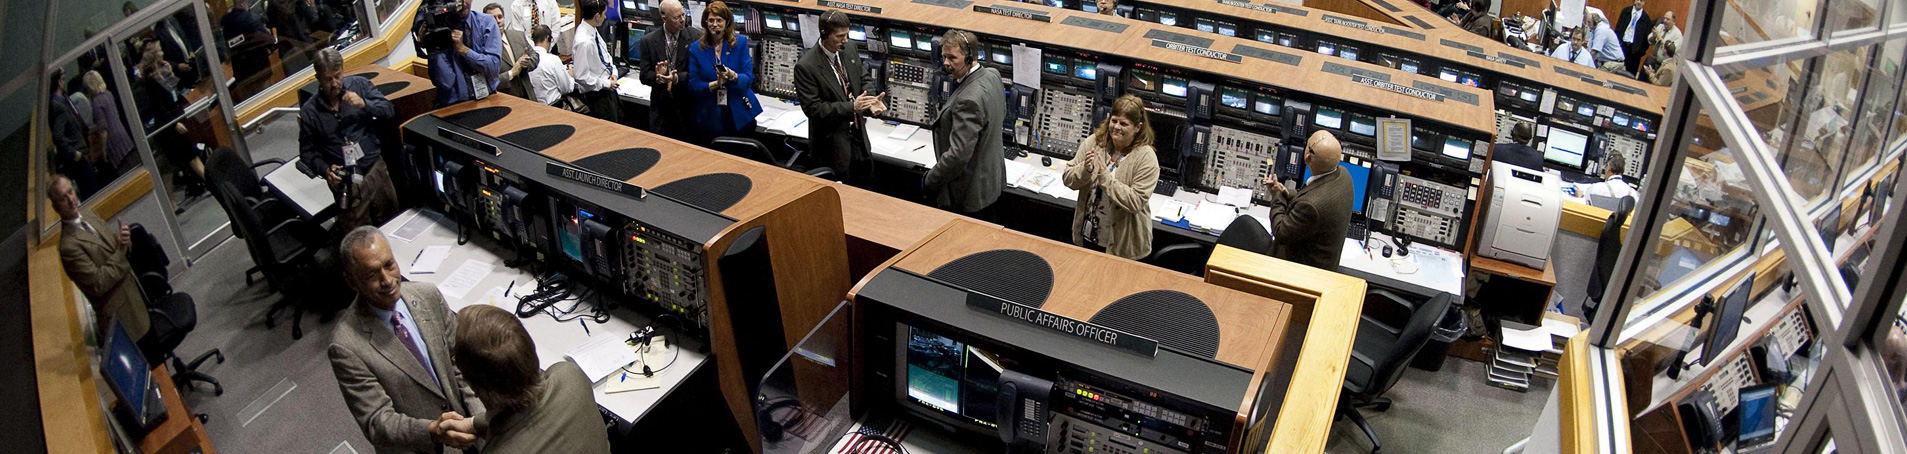 Launch Control Center Firing Room